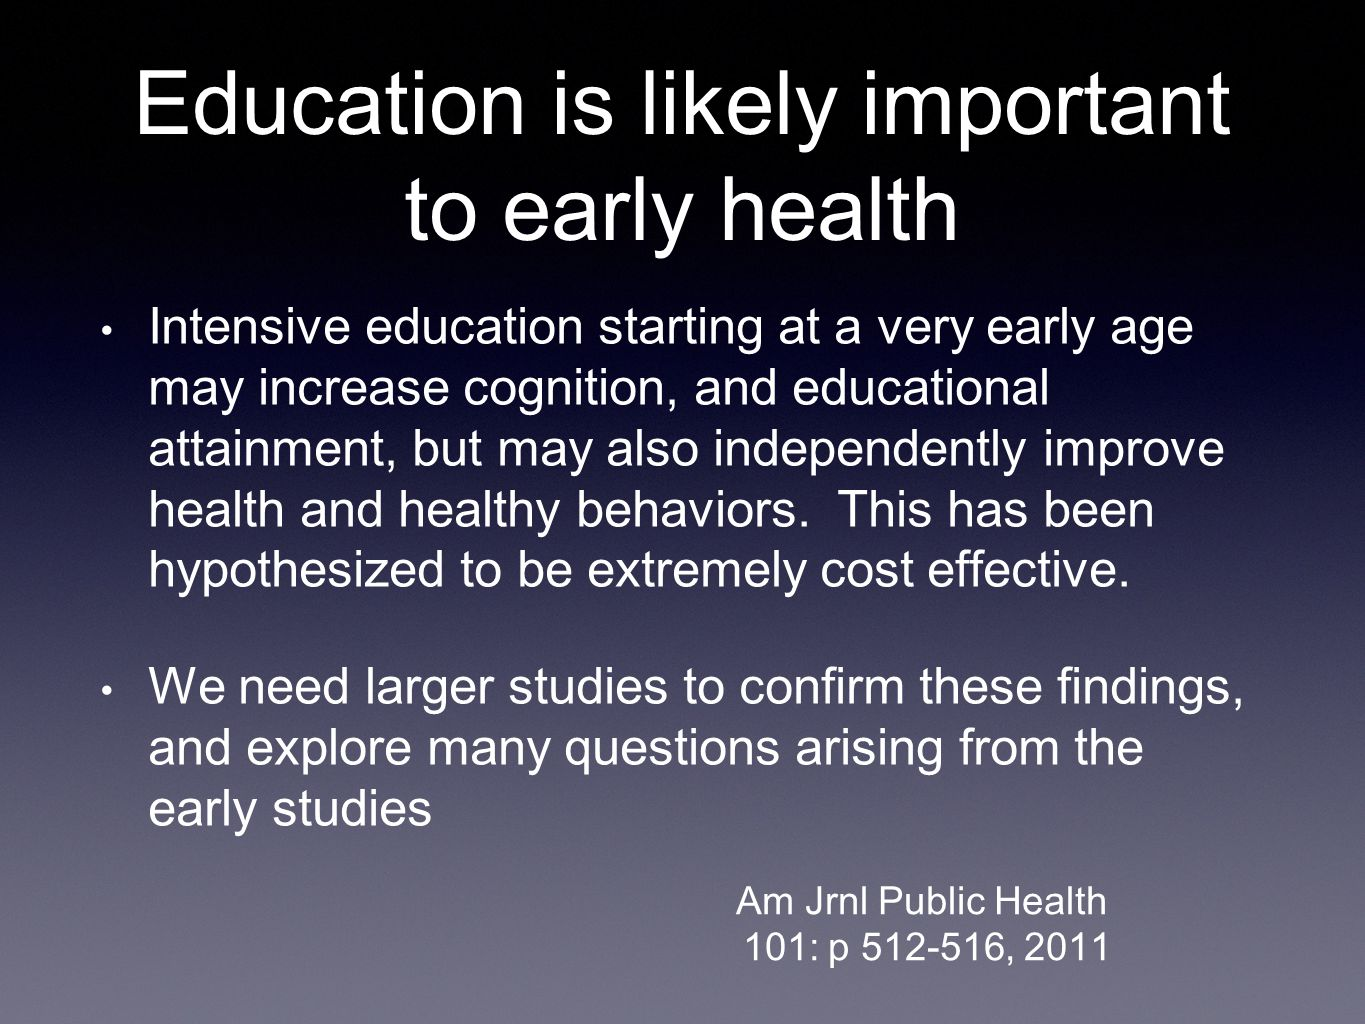 Education is likely important to early health Intensive education starting at a very early age may increase cognition, and educational attainment, but may also independently improve health and healthy behaviors.